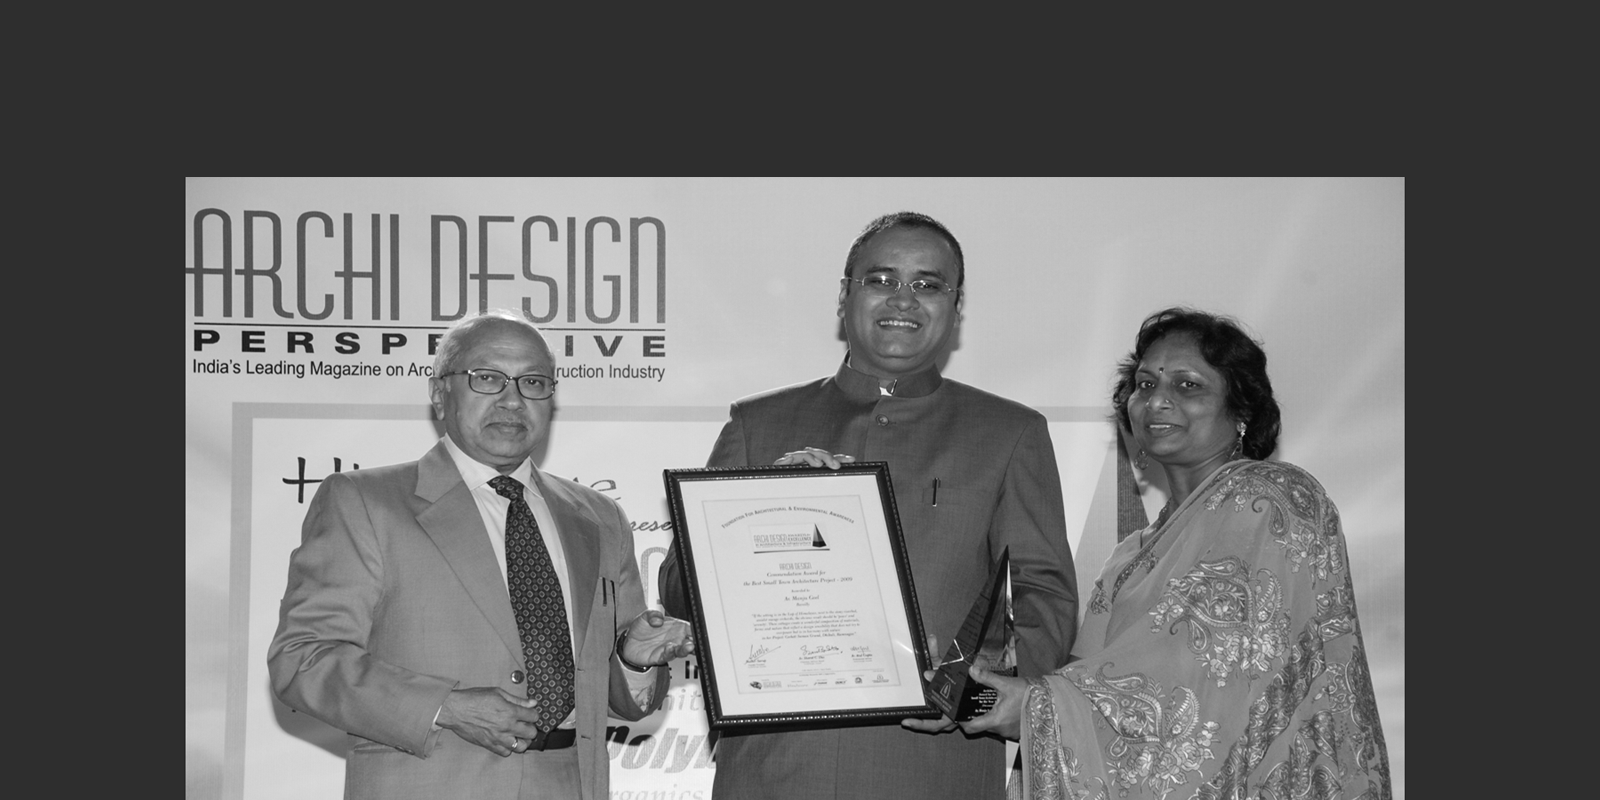 achievements-3-bw-the-novarch-architects-best-architects-in-cr-park-south-delhi-110019